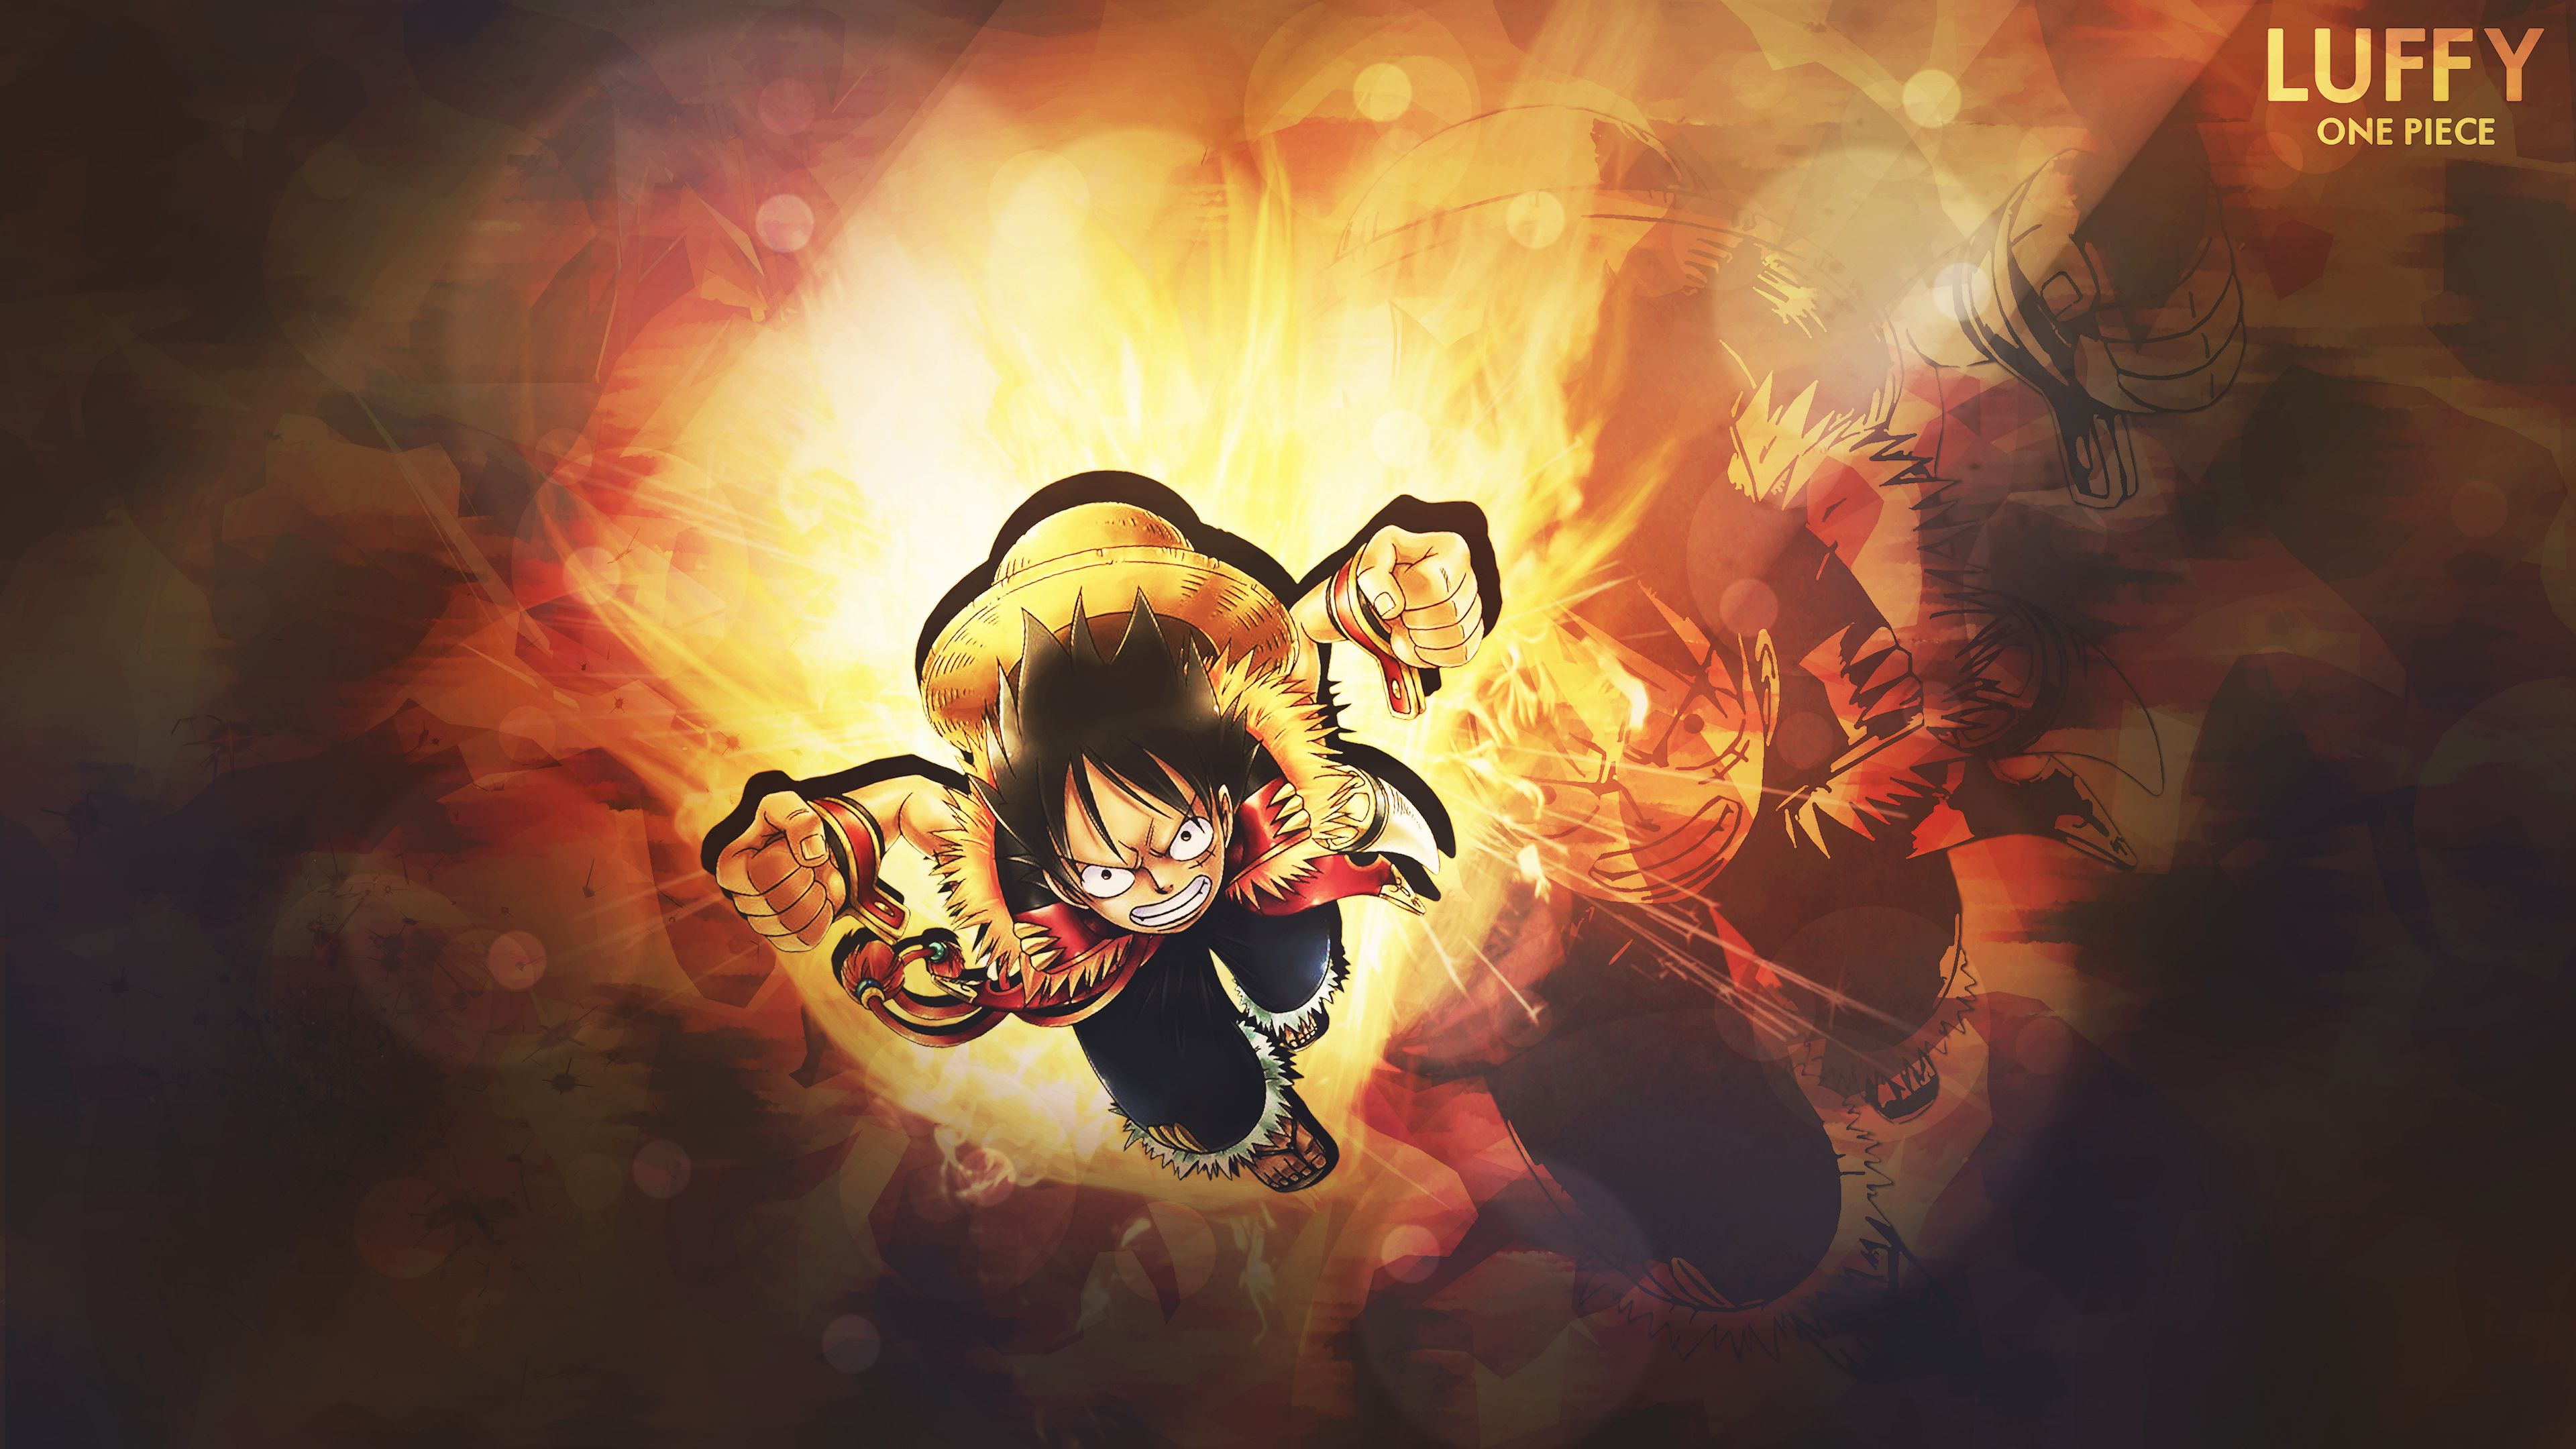 One Piece 4k Ultra Hd Wallpaper Background Image Di 2020 Dengan